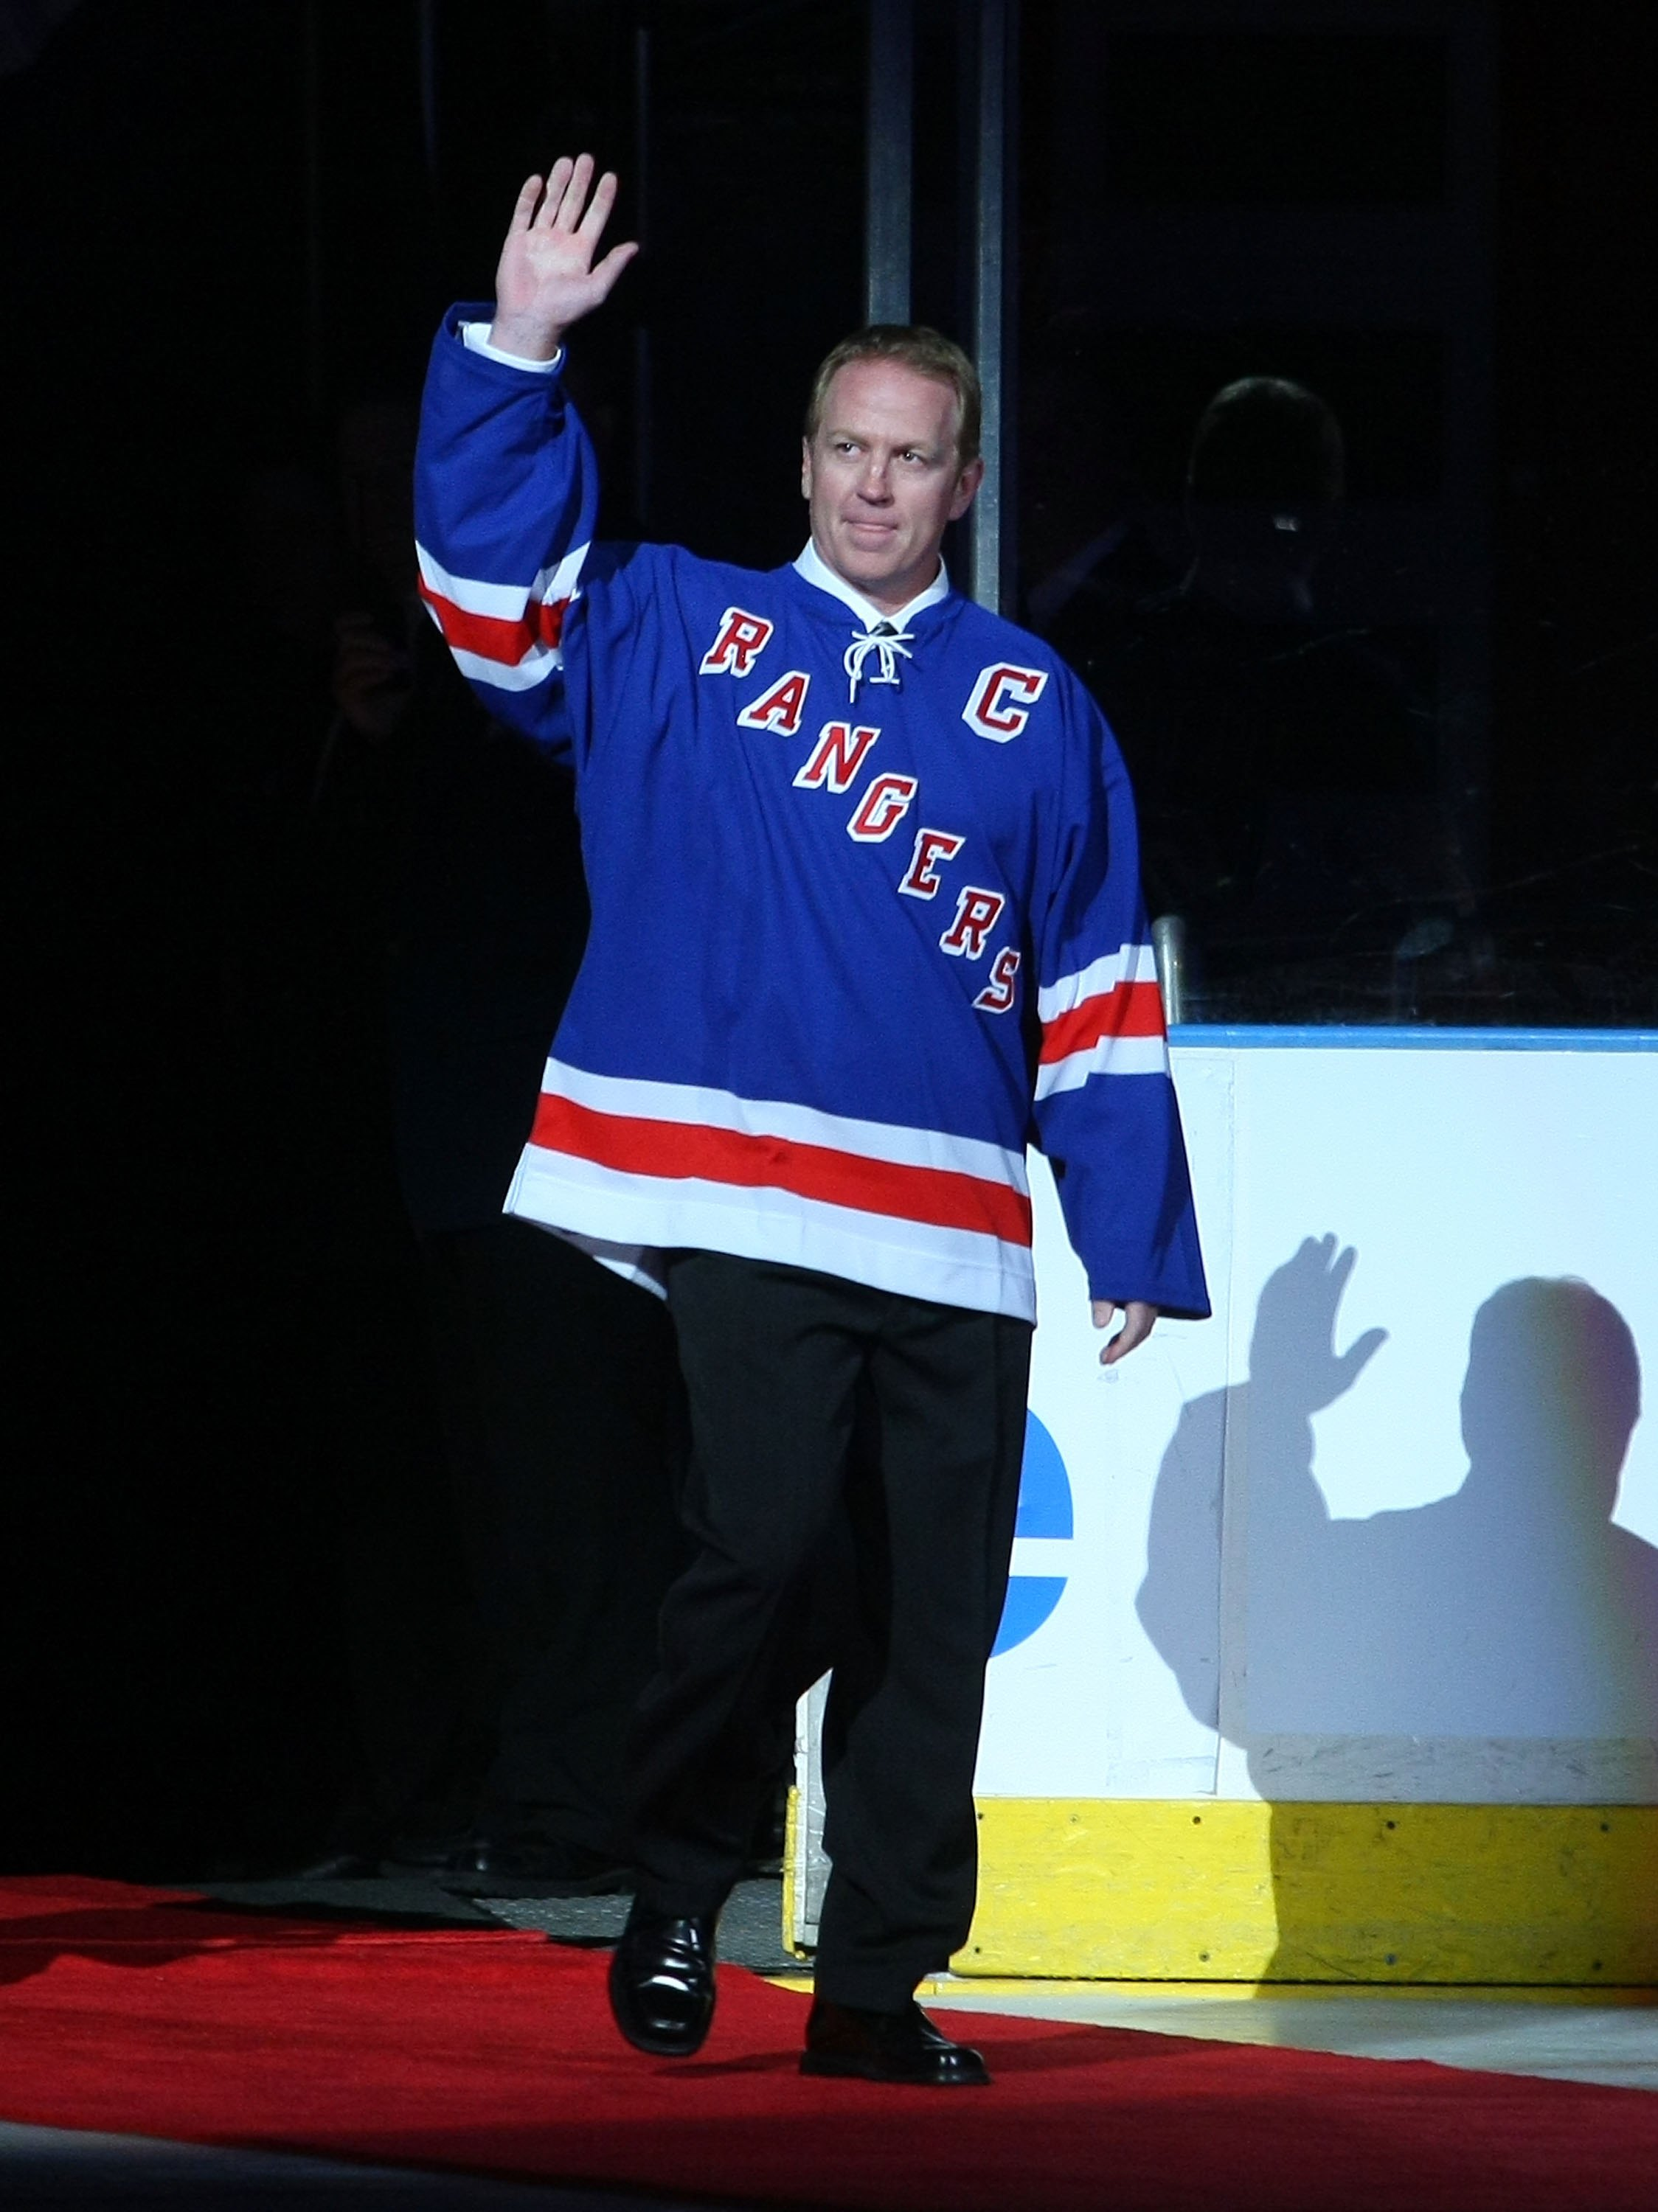 NEW YORK - FEBRUARY 22: Former New York Ranger Brian Leetch attends the ceremony honoring Andy Bathgate and Harry Howell prior to the game between the Toronto Maple Leafs and the New York Rangers on February 22, 2009 at Madison Square Garden in New York C